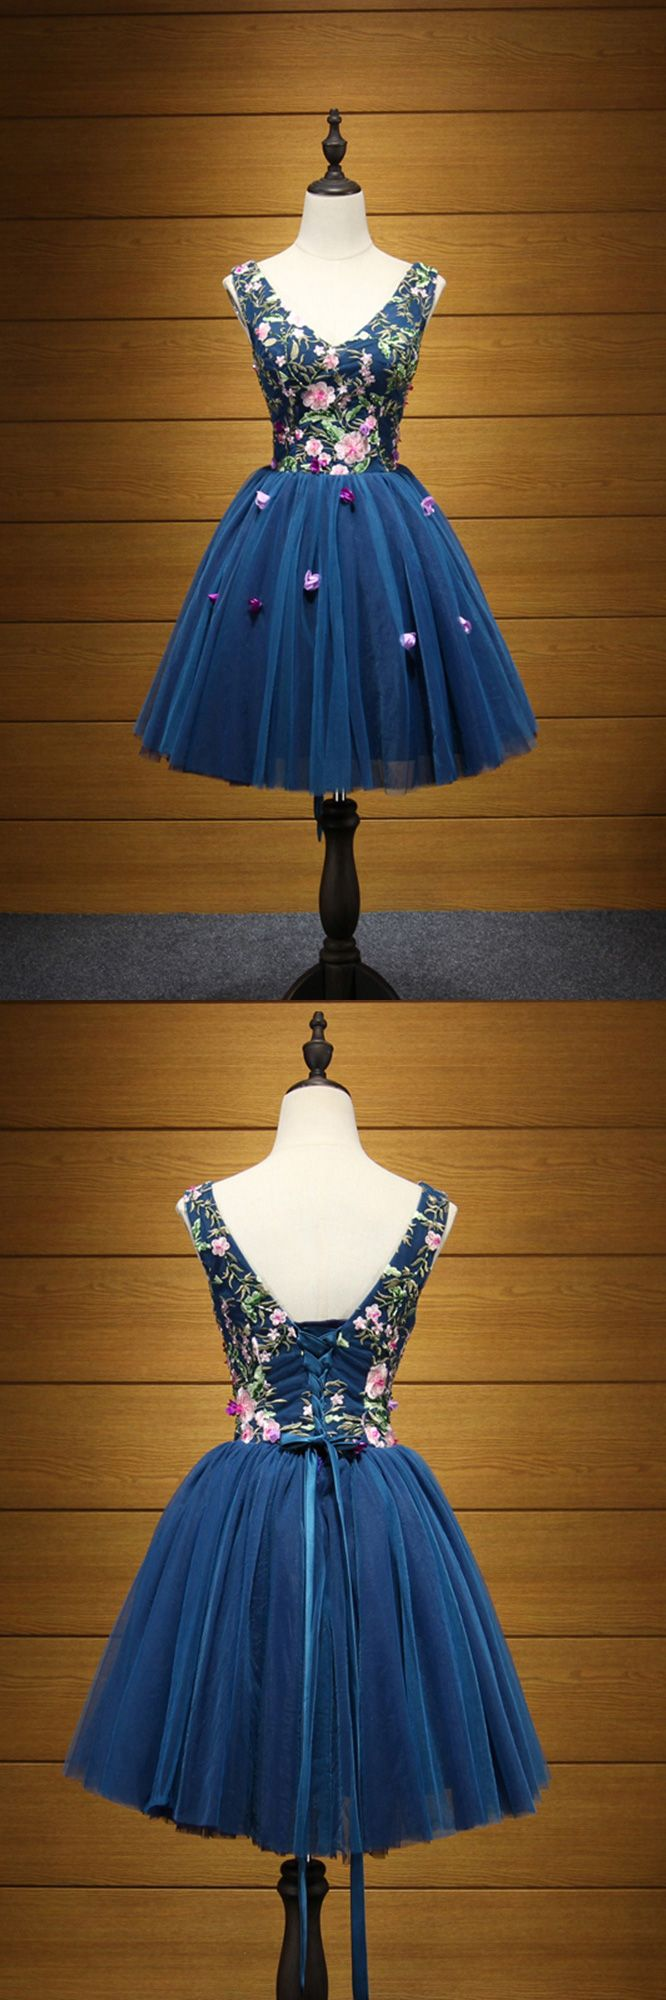 Beautiful Ink Blue V-neck Short Prom Dress for Formal, click to view more ideas!